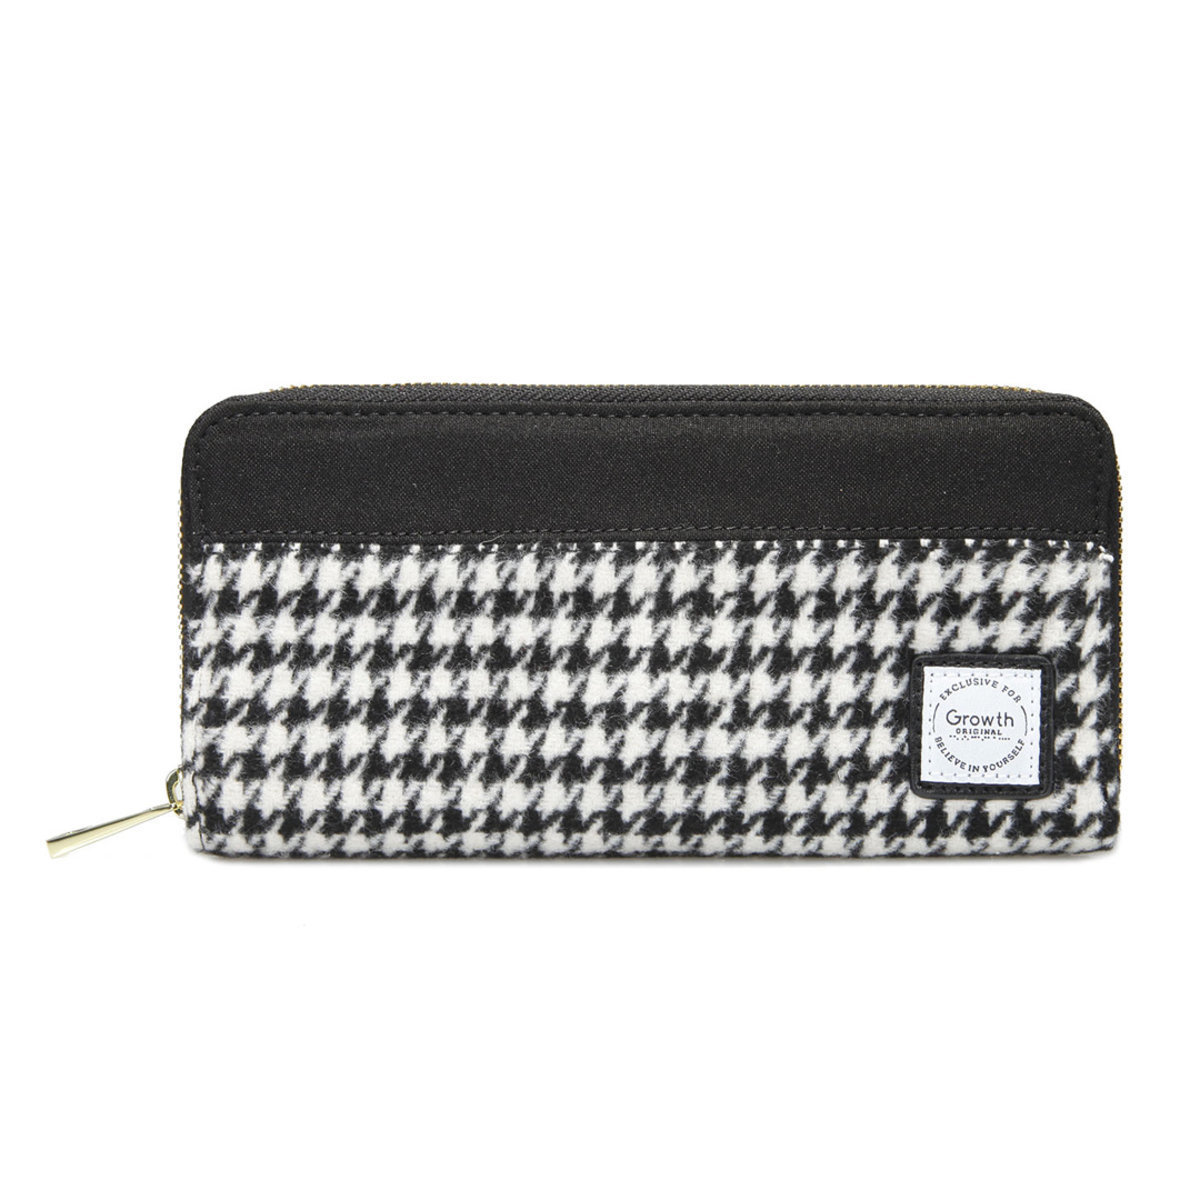 GROWTH Classic Houndstooth Camden Wallet GW-FW17-3155-P006